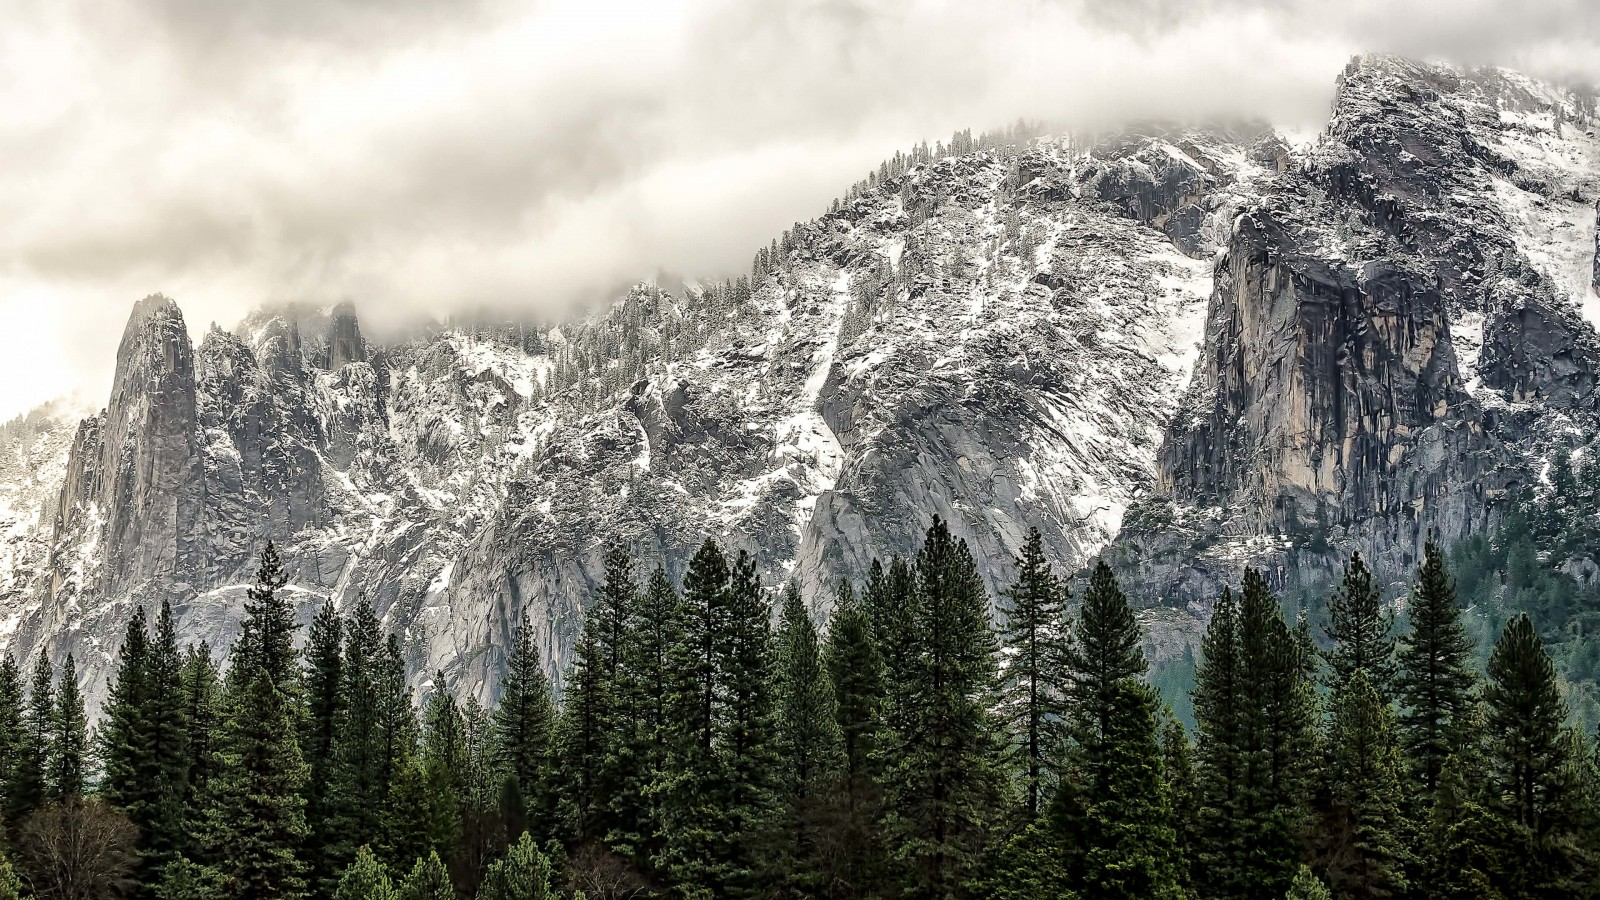 Winter Day at Yosemite National Park Wallpaper for Desktop 1600x900